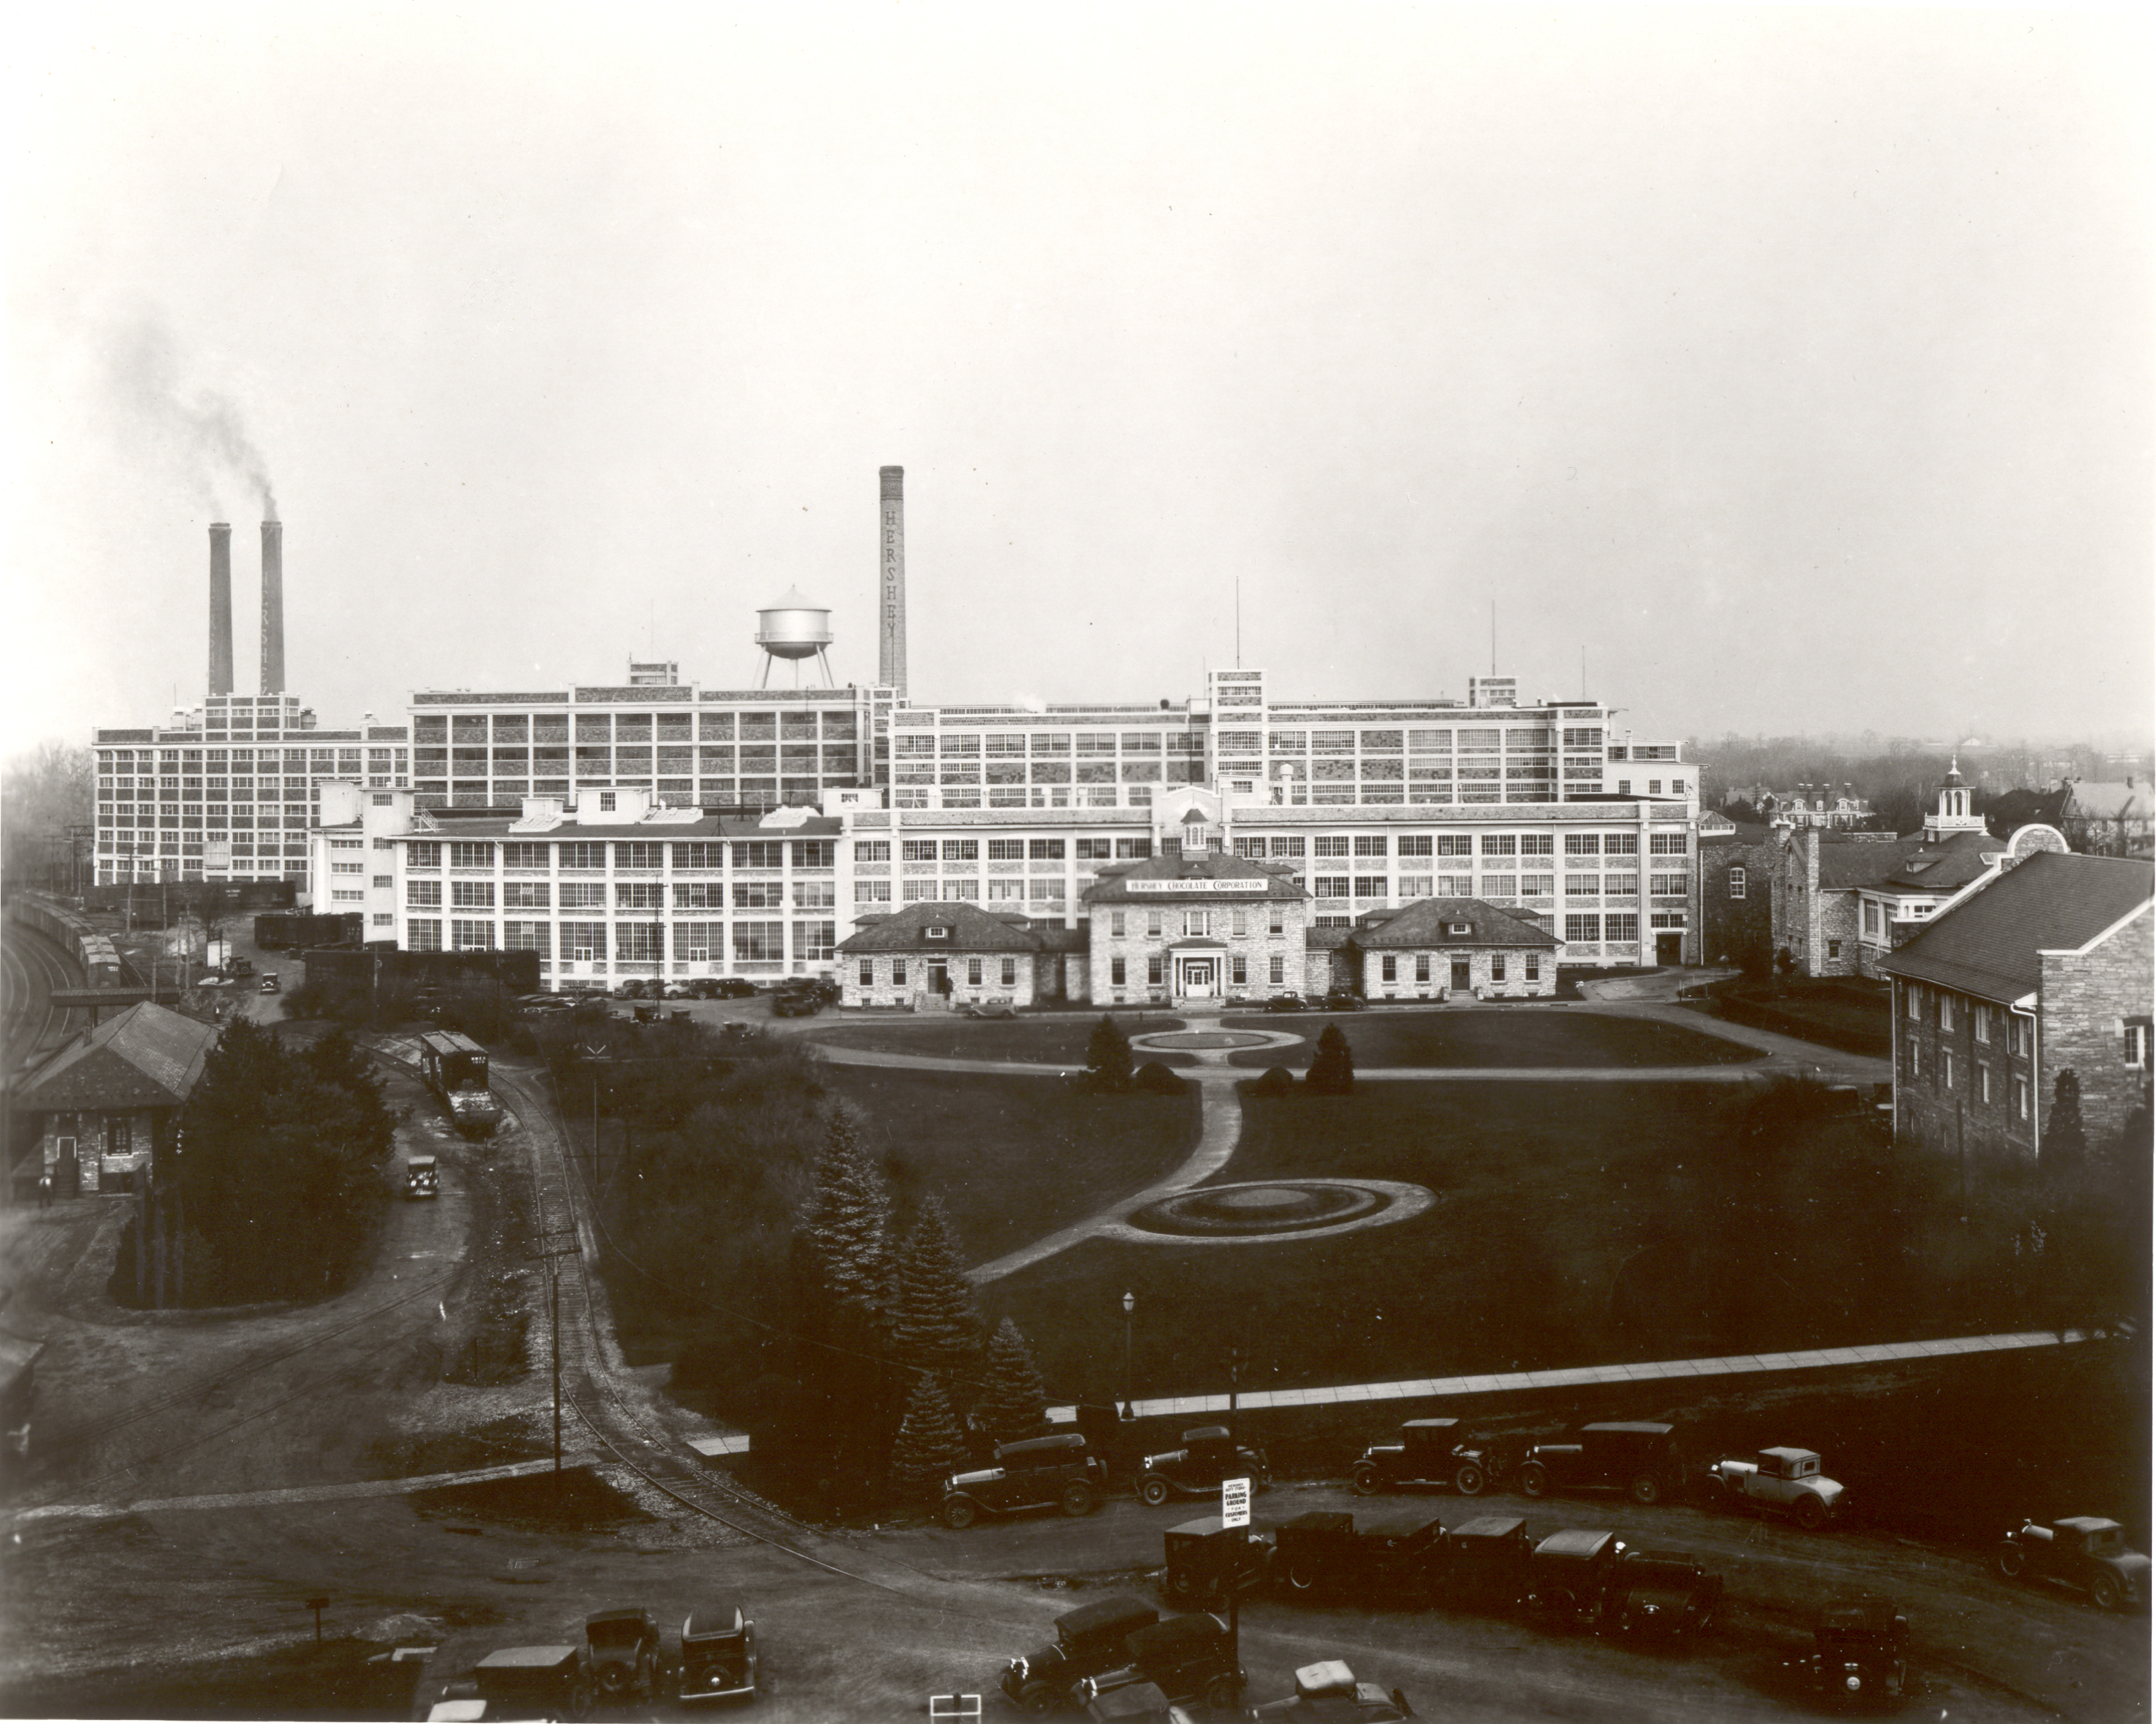 Worksheet Hershey Chocolate Company History explorepahistory com image exterior view of the hershey chocolate factory and office from railroad bridge